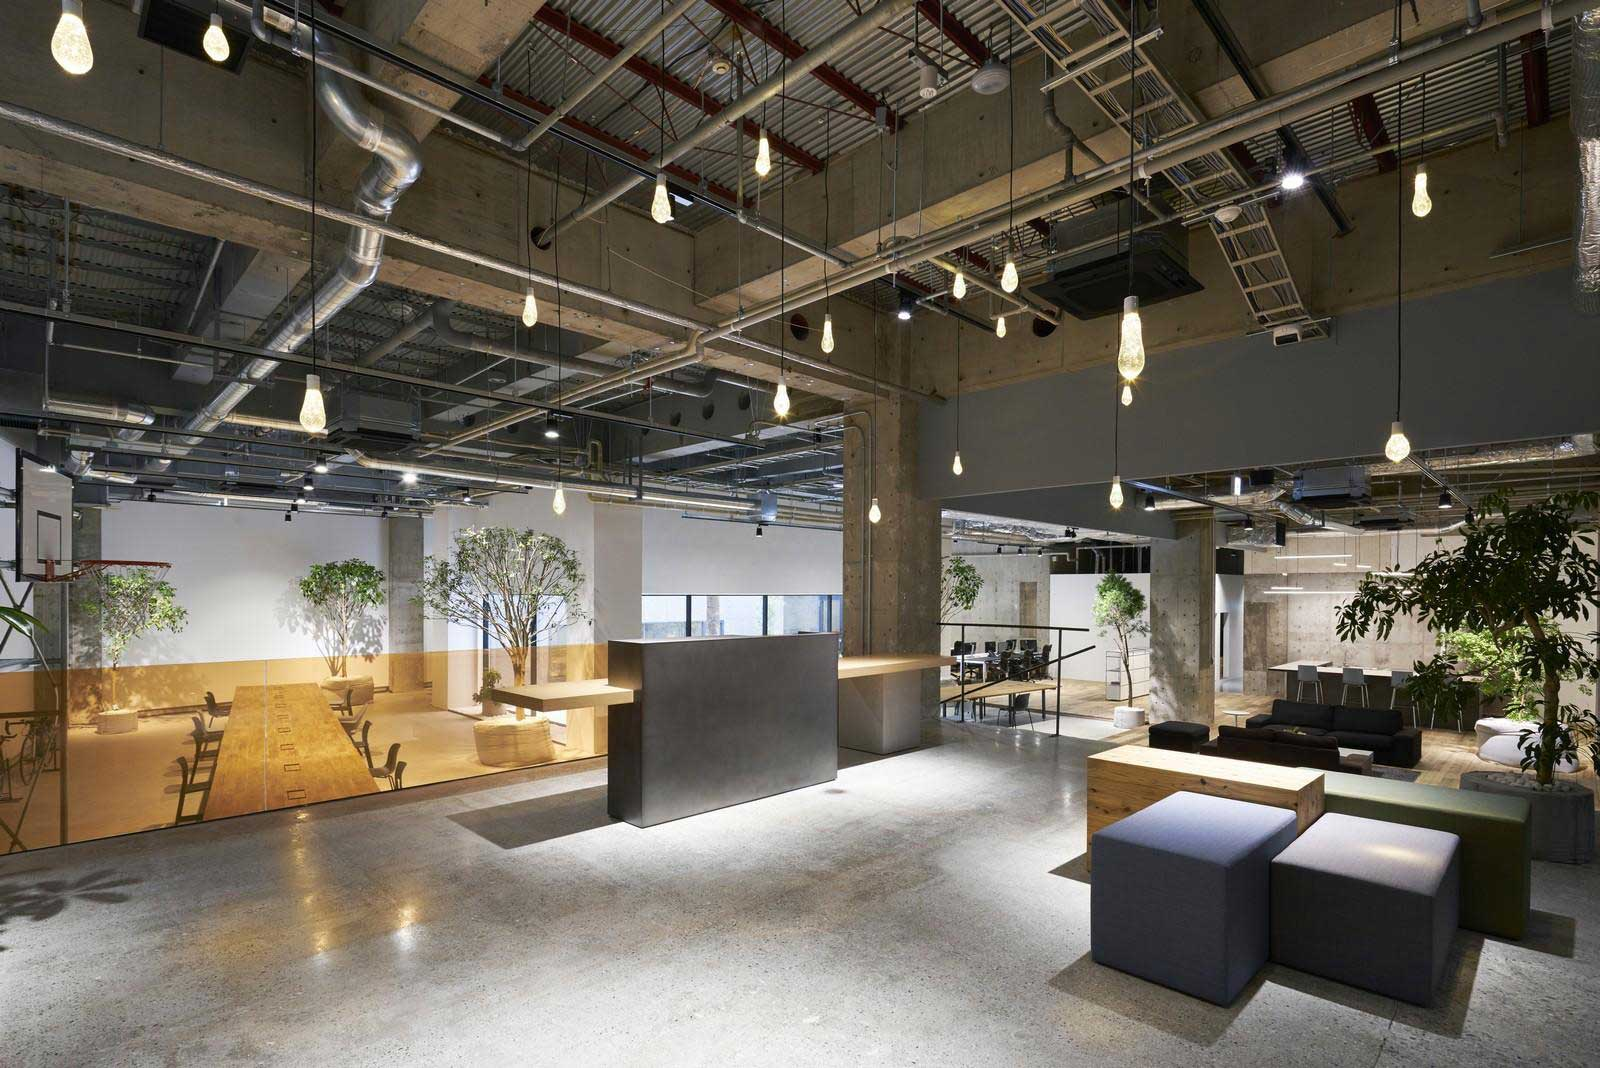 Akqa tokyo office by torafu architects yellowtrace for Industrial office interior